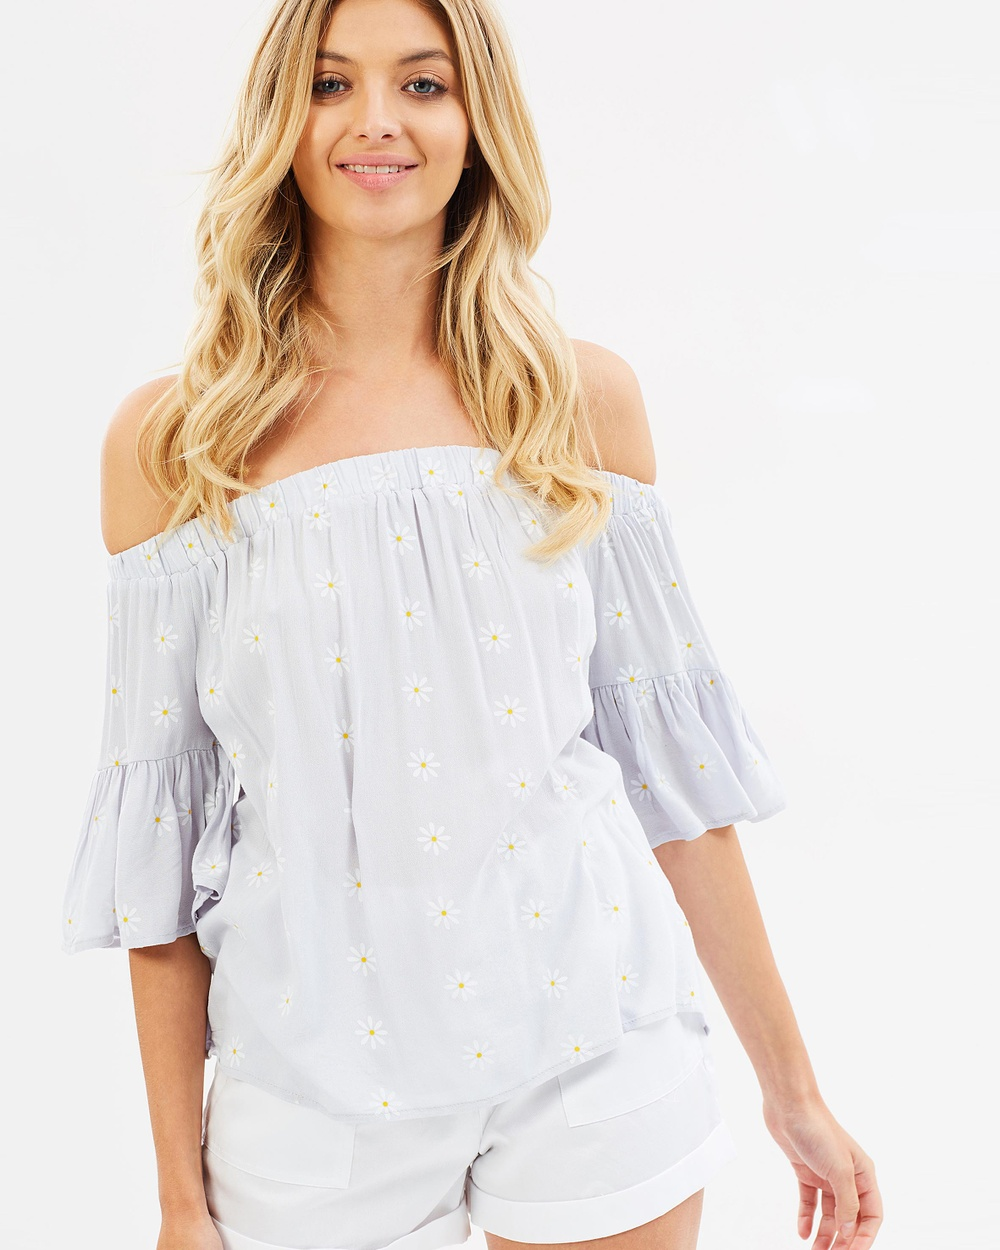 Sass Daisy Chain Off Shoulder Top Tops Daisy Chain Print Daisy Chain Off-Shoulder Top